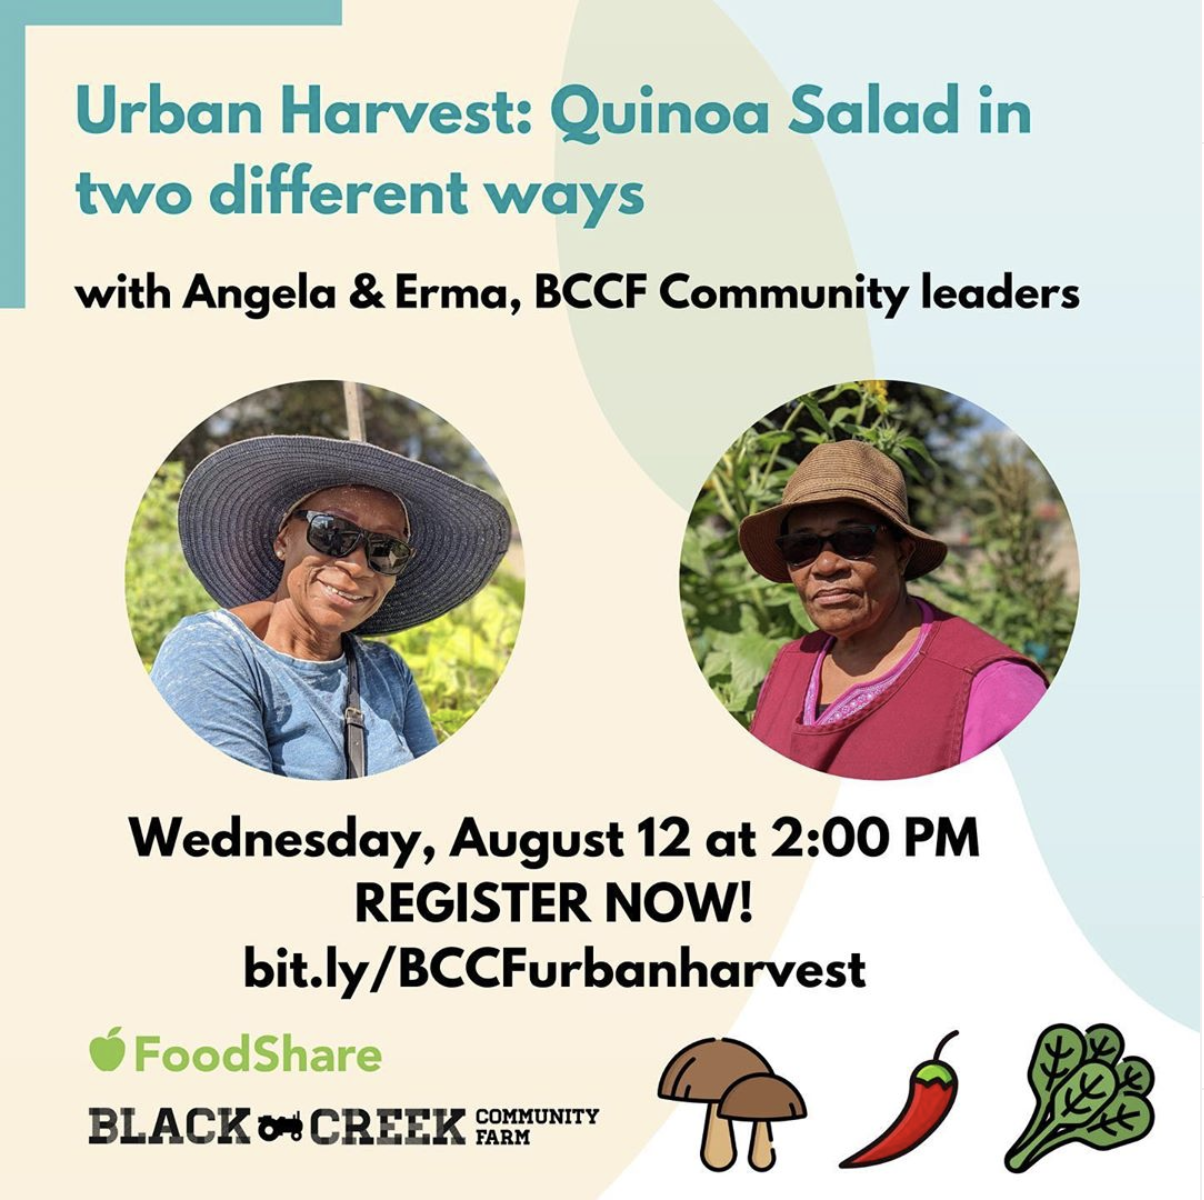 [Photo description: Title text reads : Urban Harvest: Quinoa Salad in two different ways with Angela & Erma, BCCF Community leaders. Separate images of Angela & Erma. Date: Wednesday, August 12, 2020. Register Now! - with Black Creek Community Farm logo, and image of cartoon vegetables next to it]